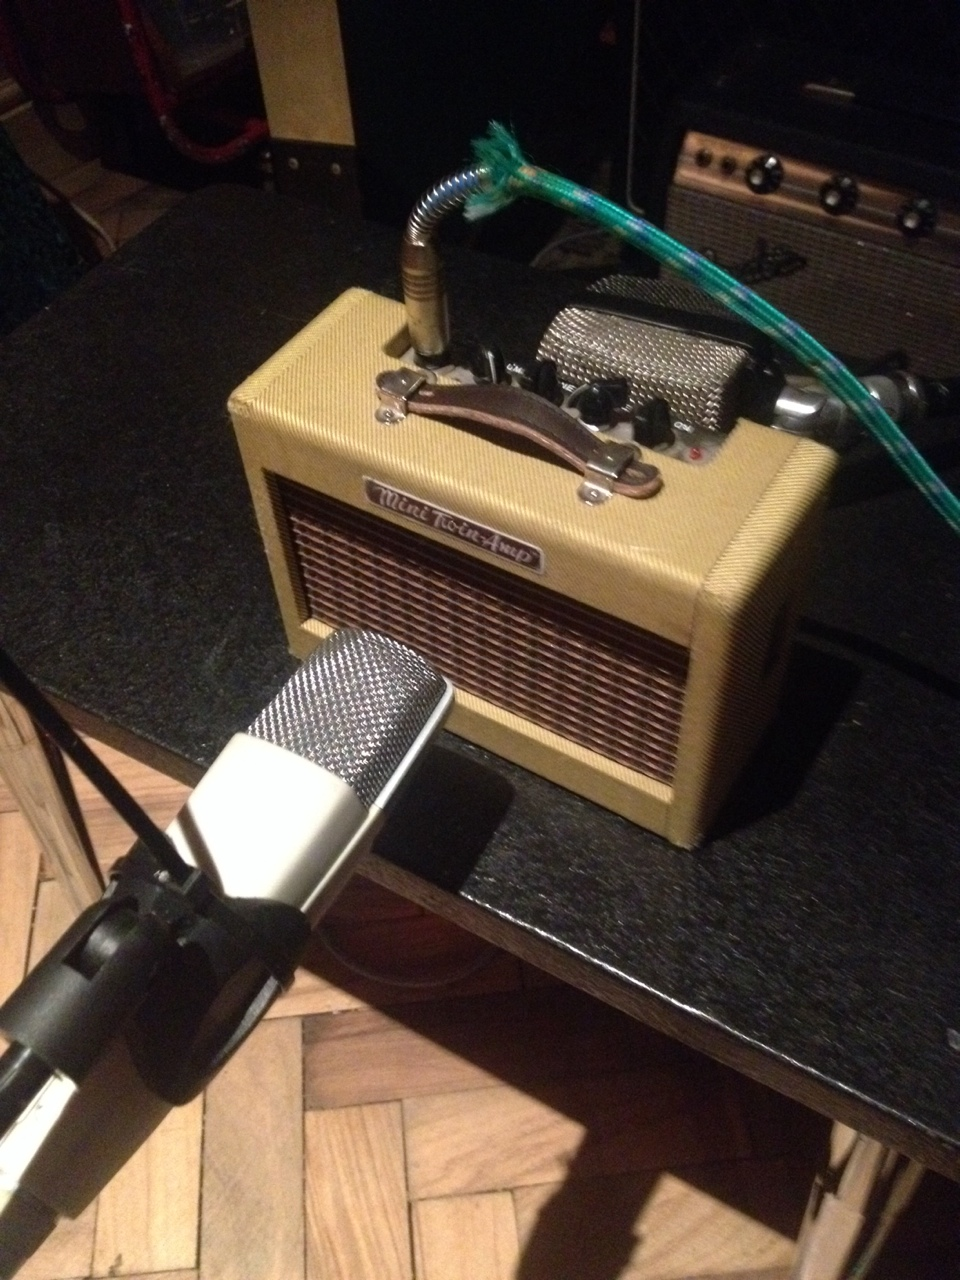 My buzzsaw is buzzsawier than yours: Fender mini twin through Sennheiser MD421 and AKG D12